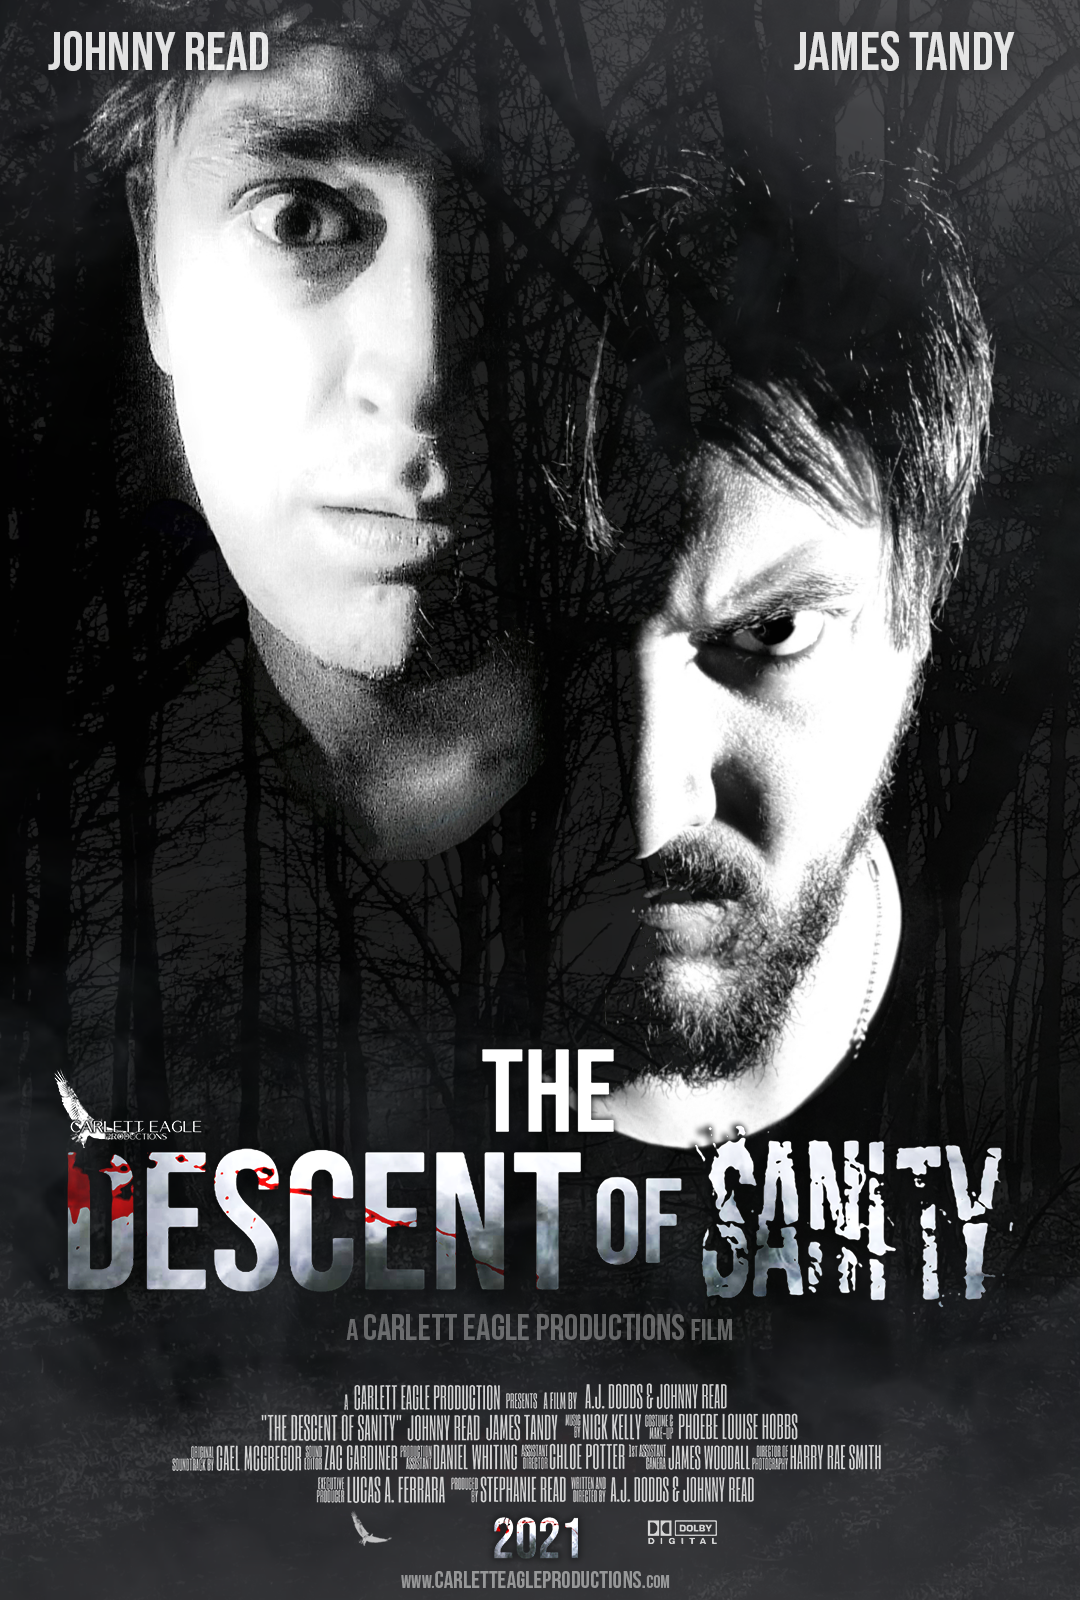 The Descent of Sanity Poster Variant 2